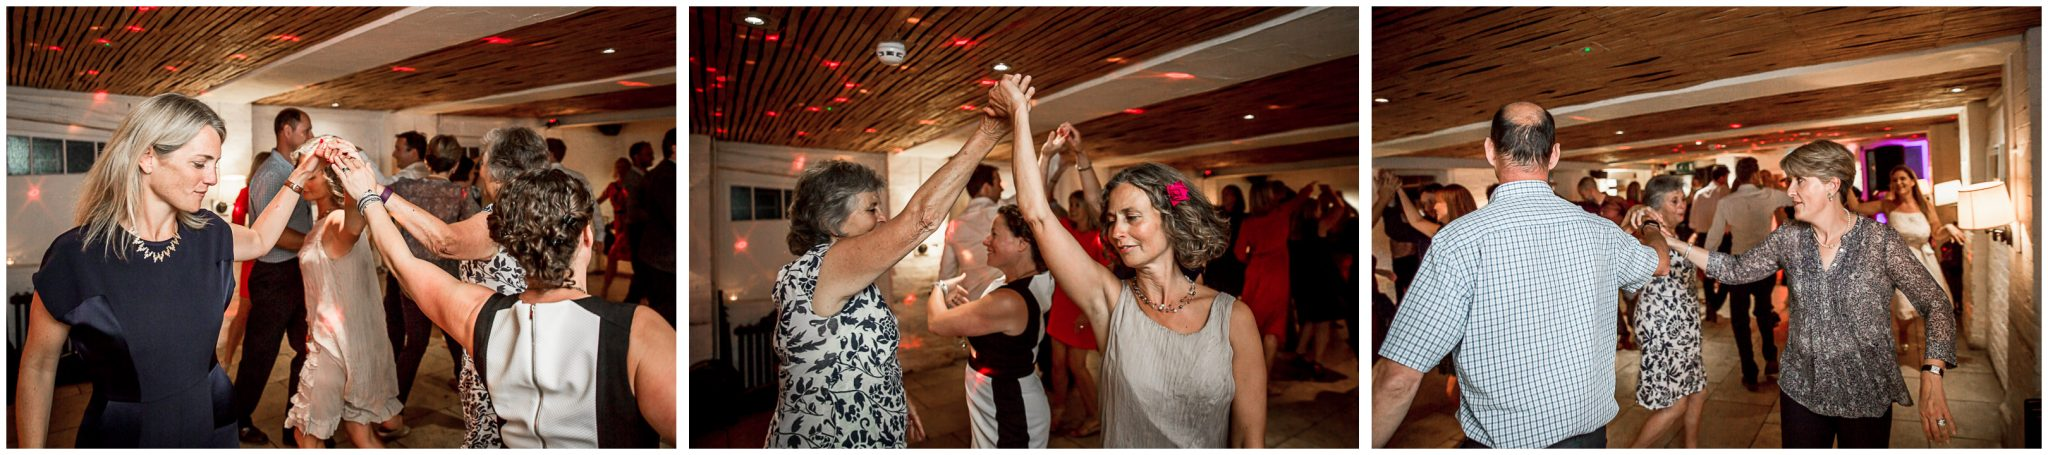 Candid photography of dancing at wedding reception